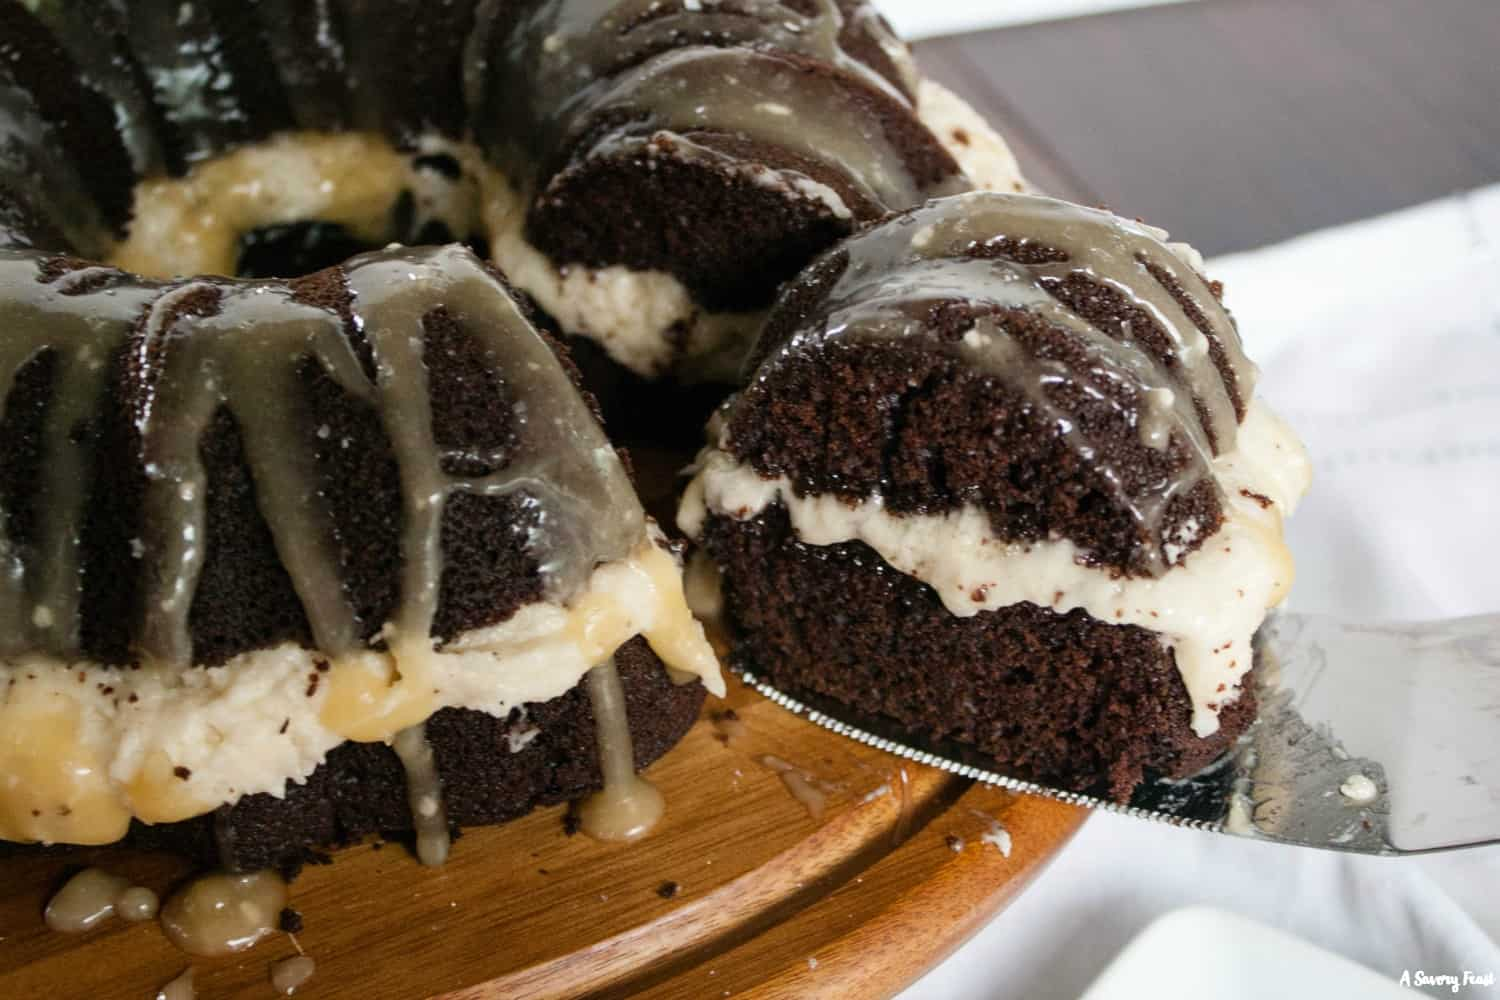 Need a beautiful, delicious dessert for a party? Salted Caramel Chocolate Bundt Cake